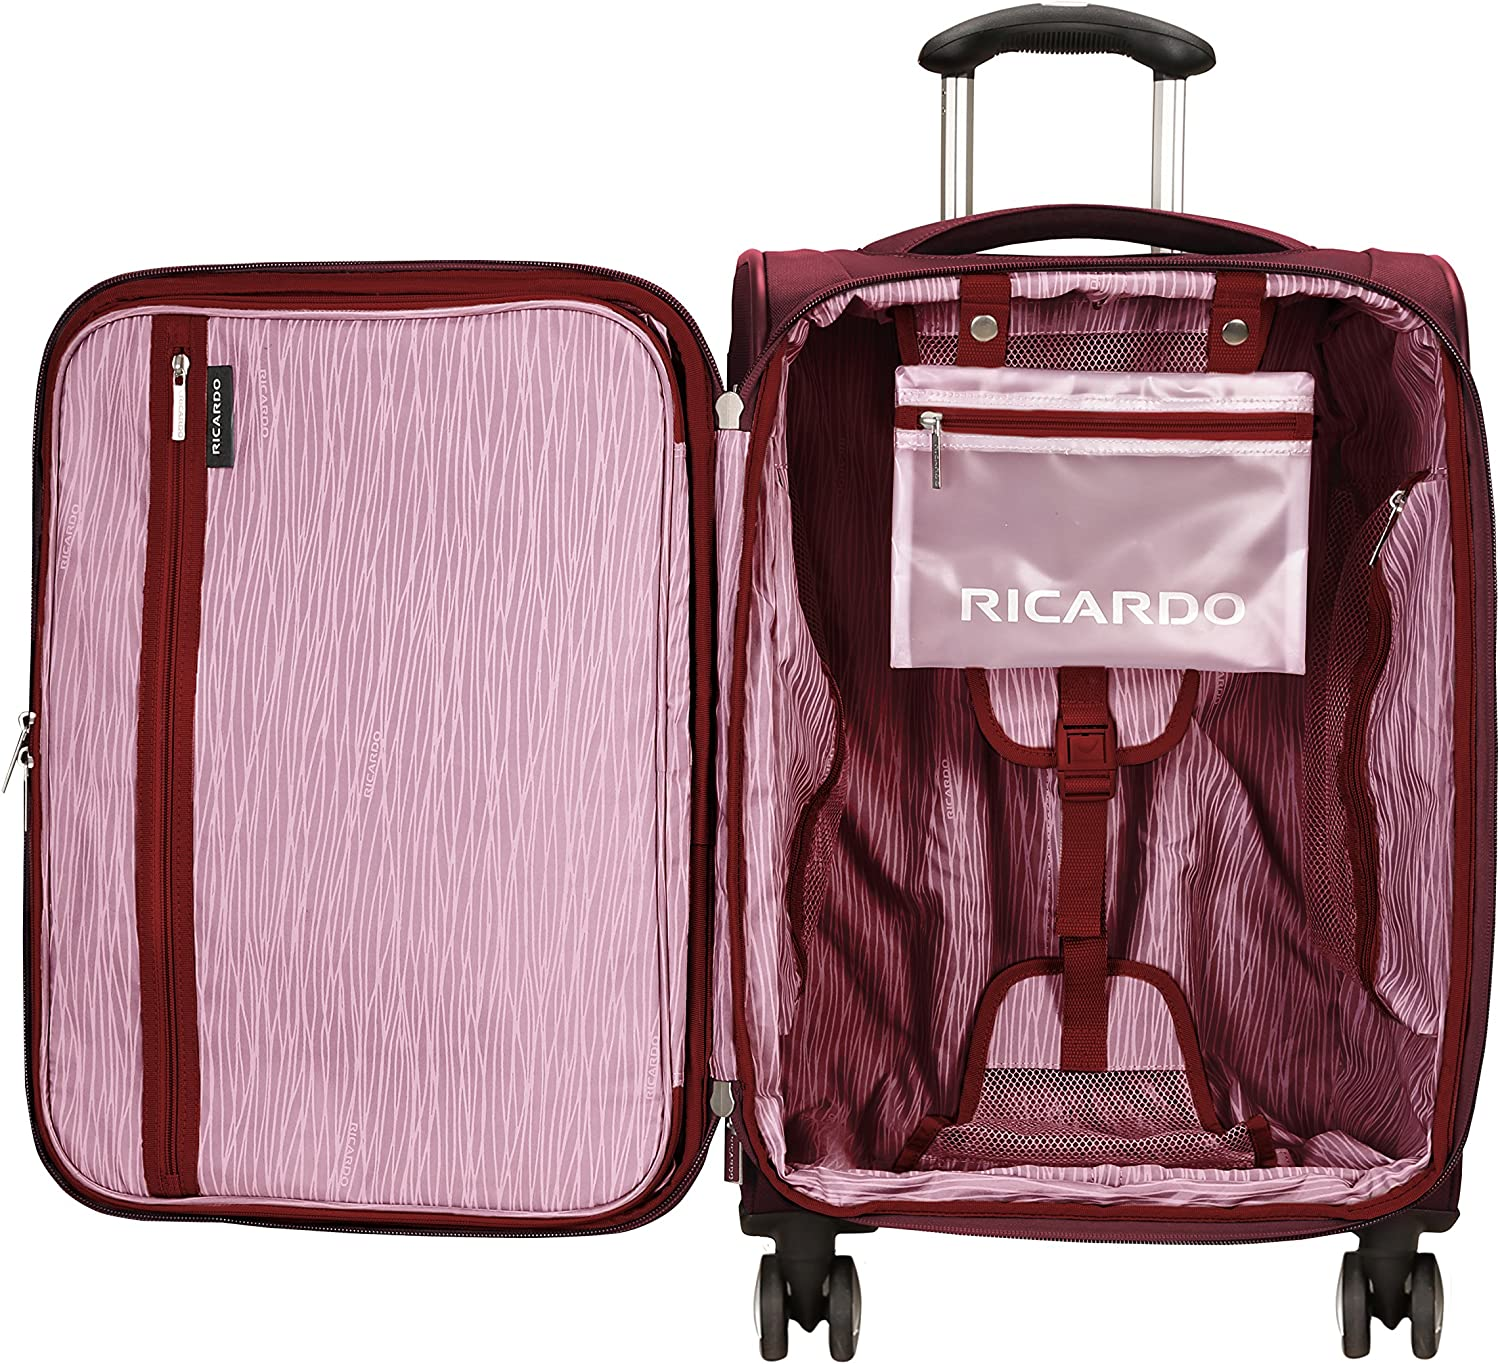 Wine Ricardo Beverly Hills Mar Vista 2.0 21-Inch Spinner Carry On Luggage